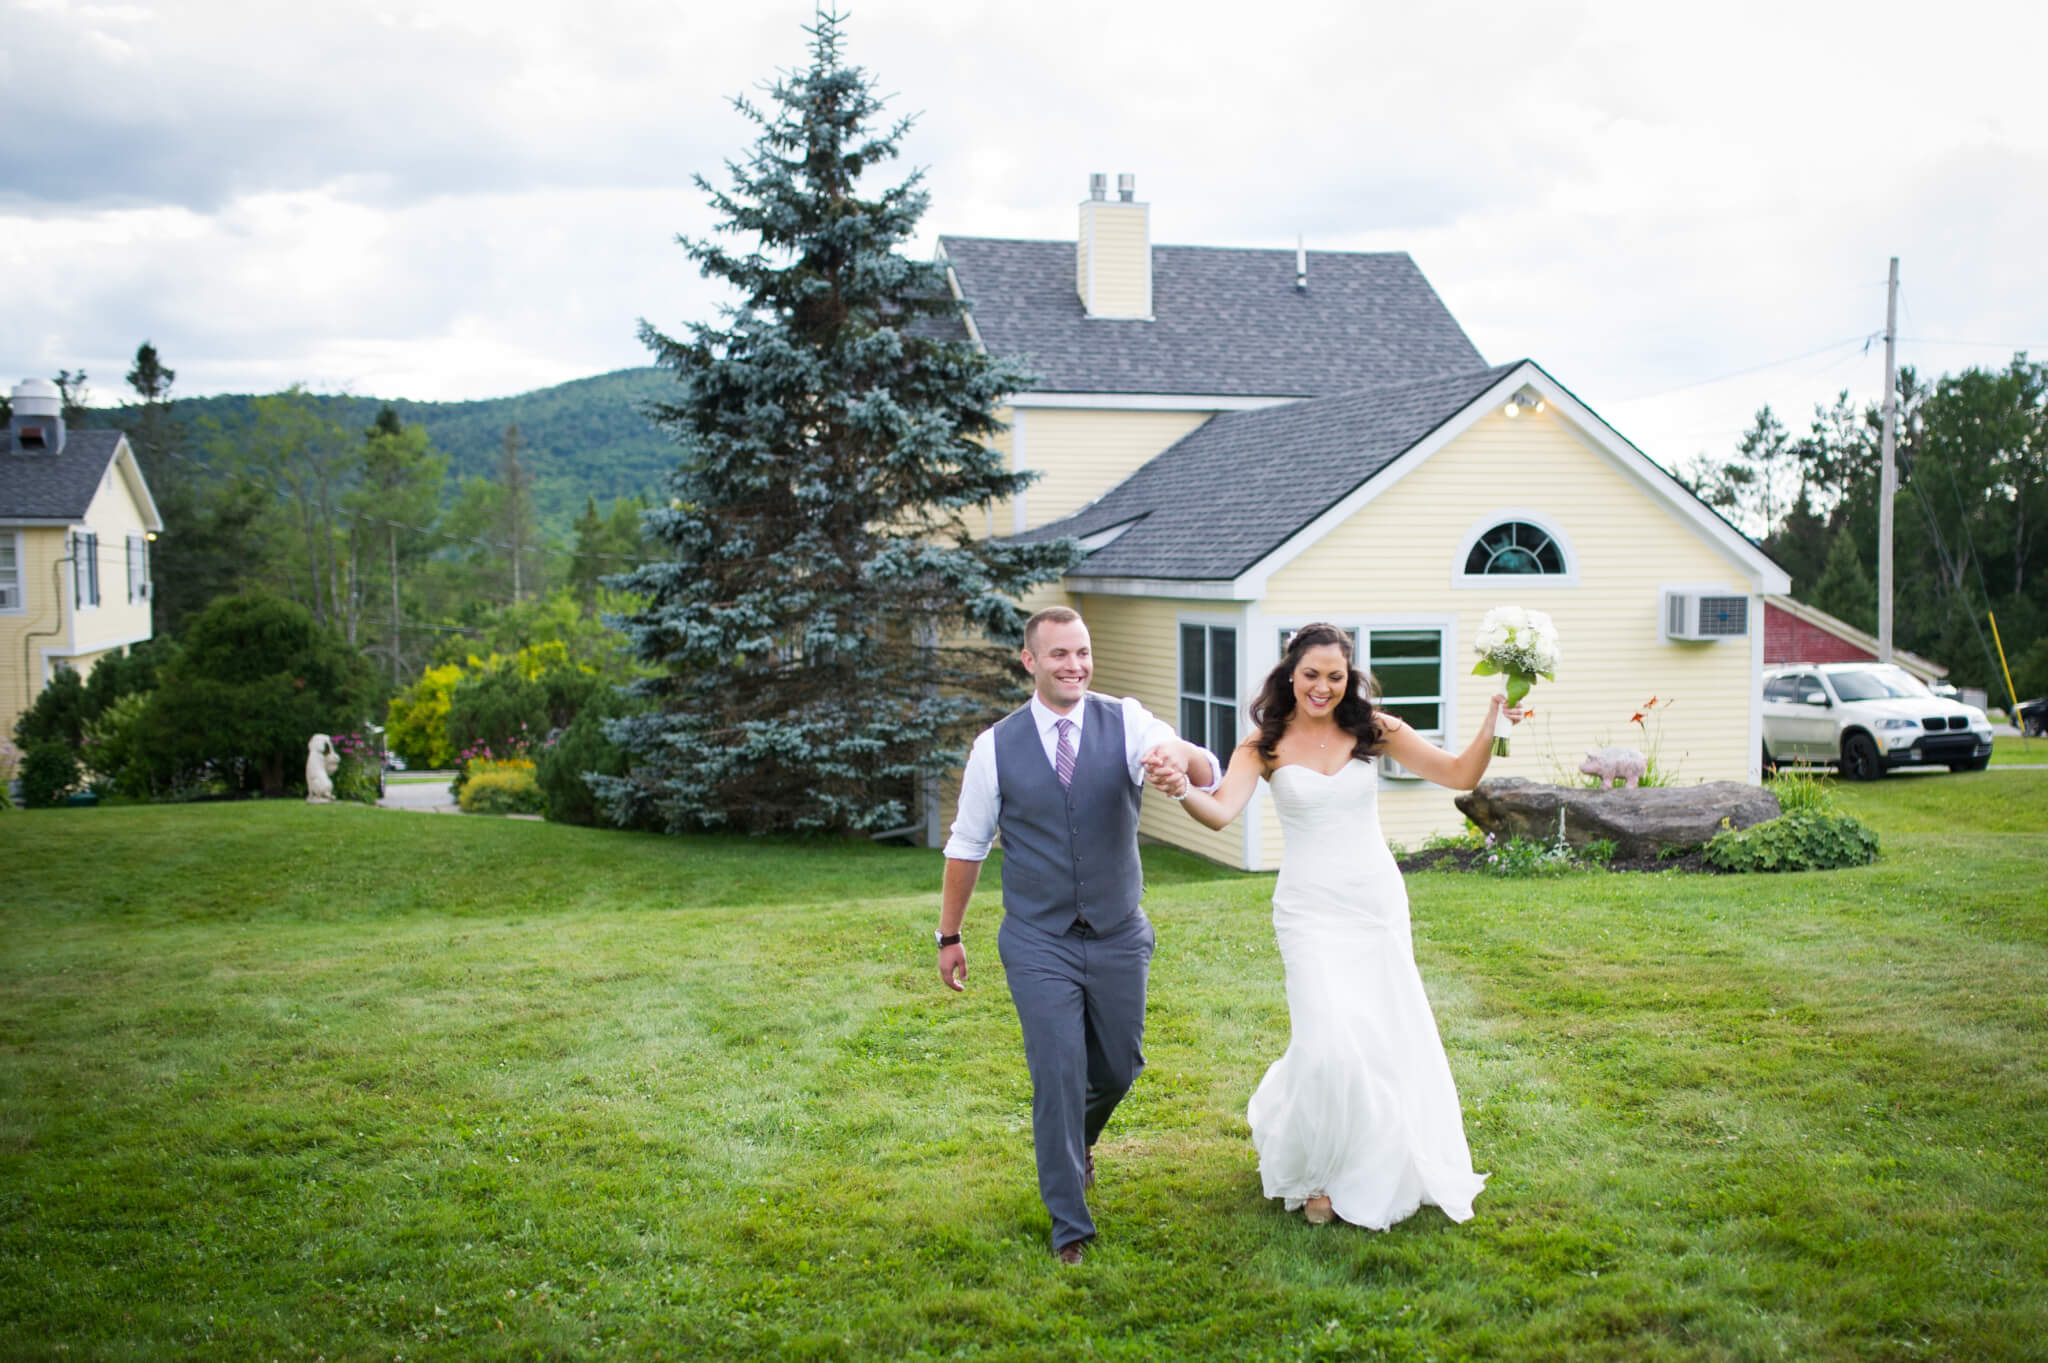 Bride and Groom in front of Red Clover Inn.